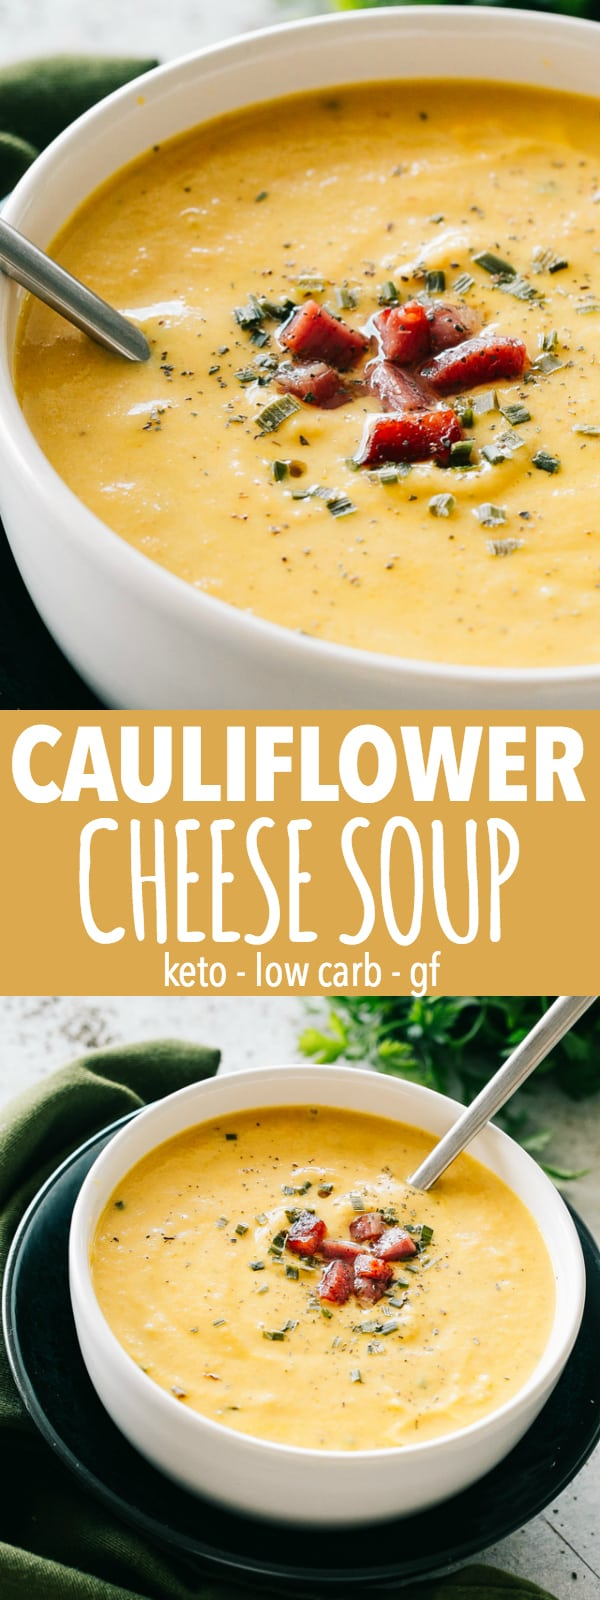 Cauliflower Cheese Soup – A wonderful twist on the classic cheese soup prepared with cauliflower, bacon, cheddar cheese, and a splash of cream. This soup will have everyone coming back for seconds. It's also Low Carb, Keto, and Gluten Free! #cheese #soup #cauliflower #cheesesoup #comfortfood #fallrecipes #bacon #keto #glutenfree #lowcarb #dinnerrecipes #vegetarian